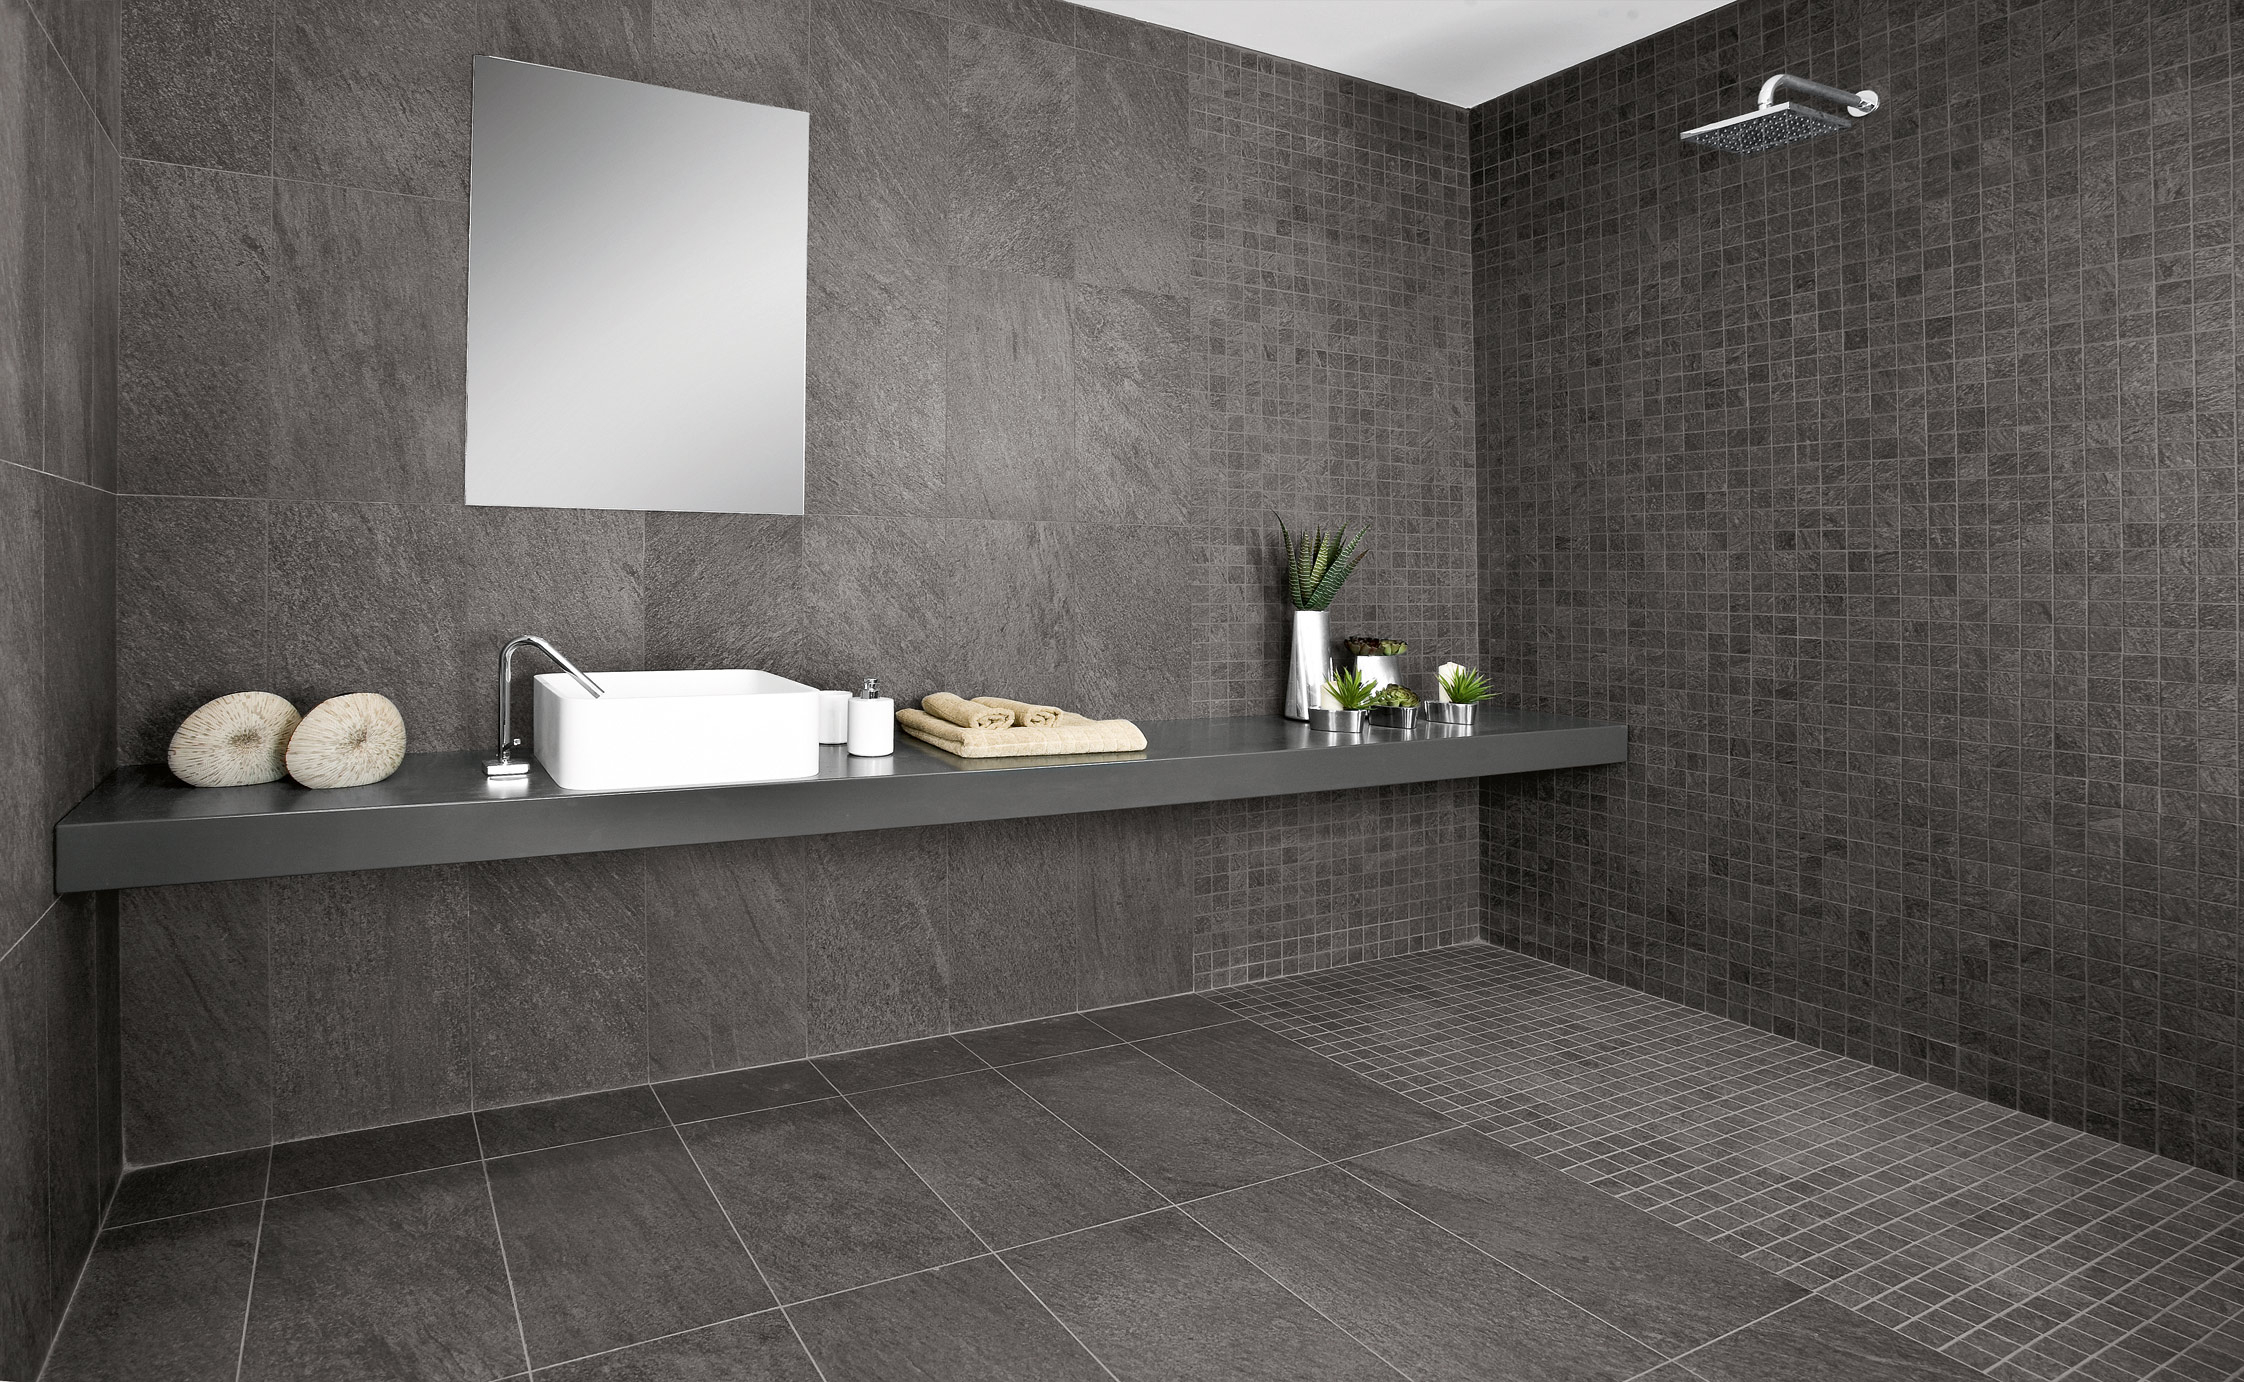 How To Create A Safe And Secure Wet Room In 4 Simple Steps